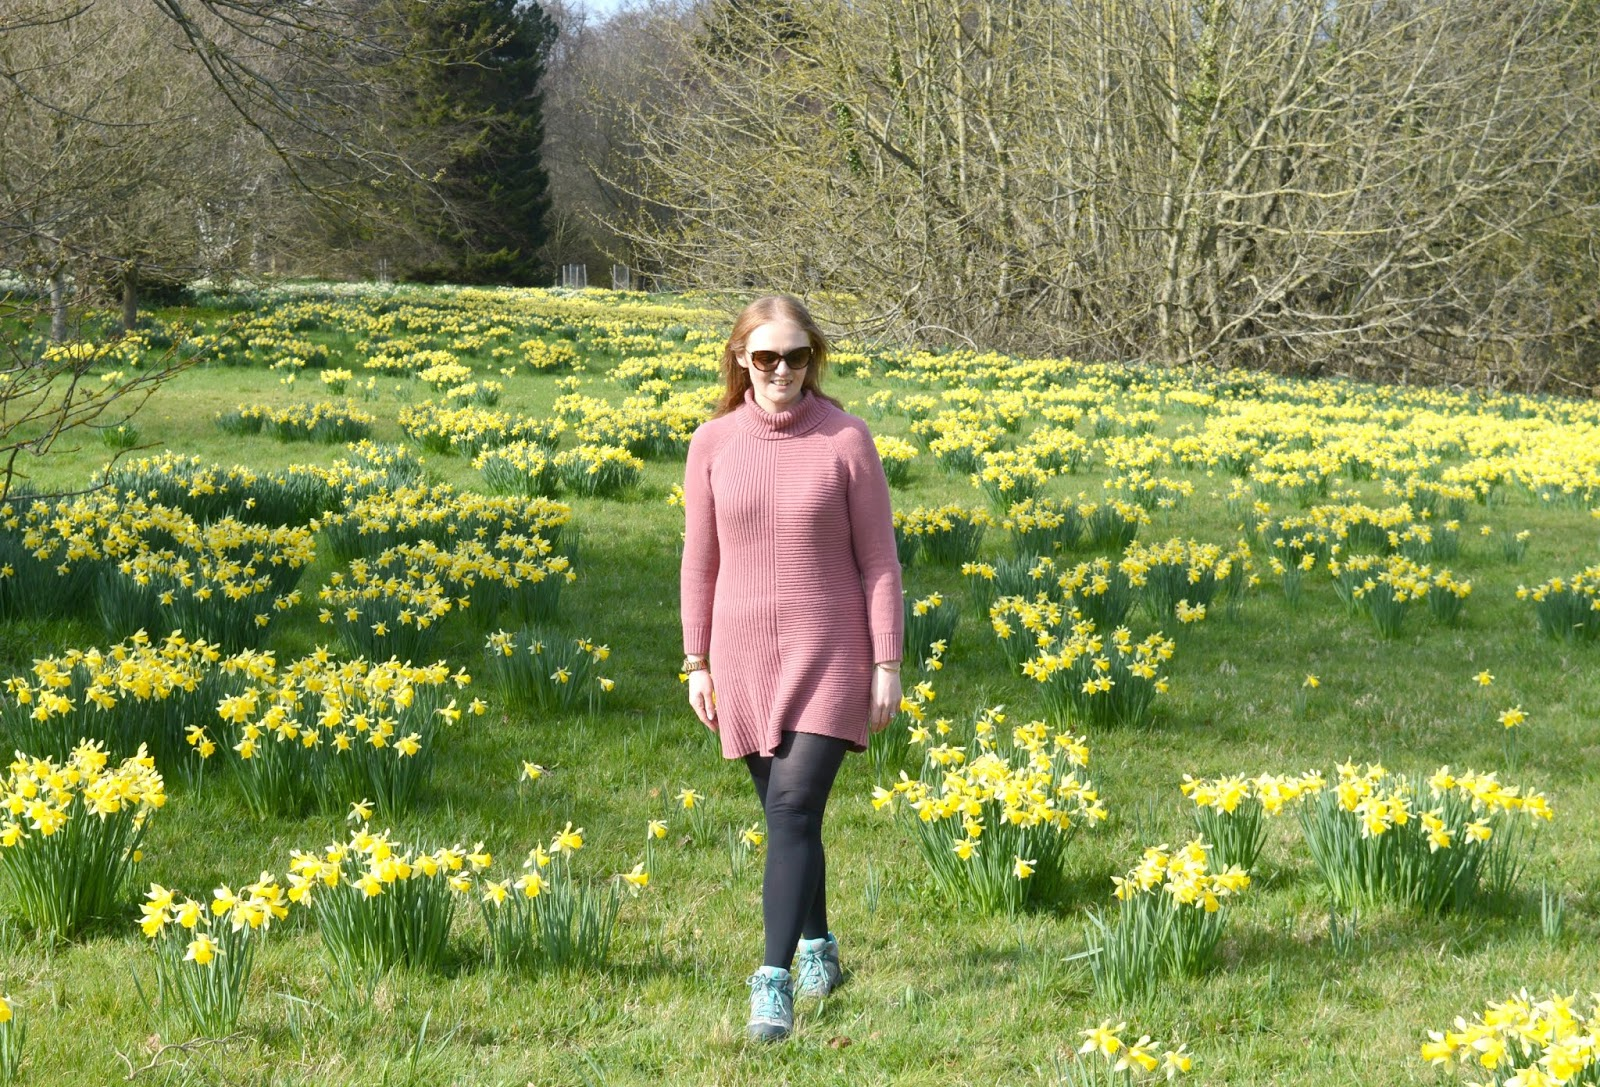 Howick Hall, Northumberland - Daffodil Carpet